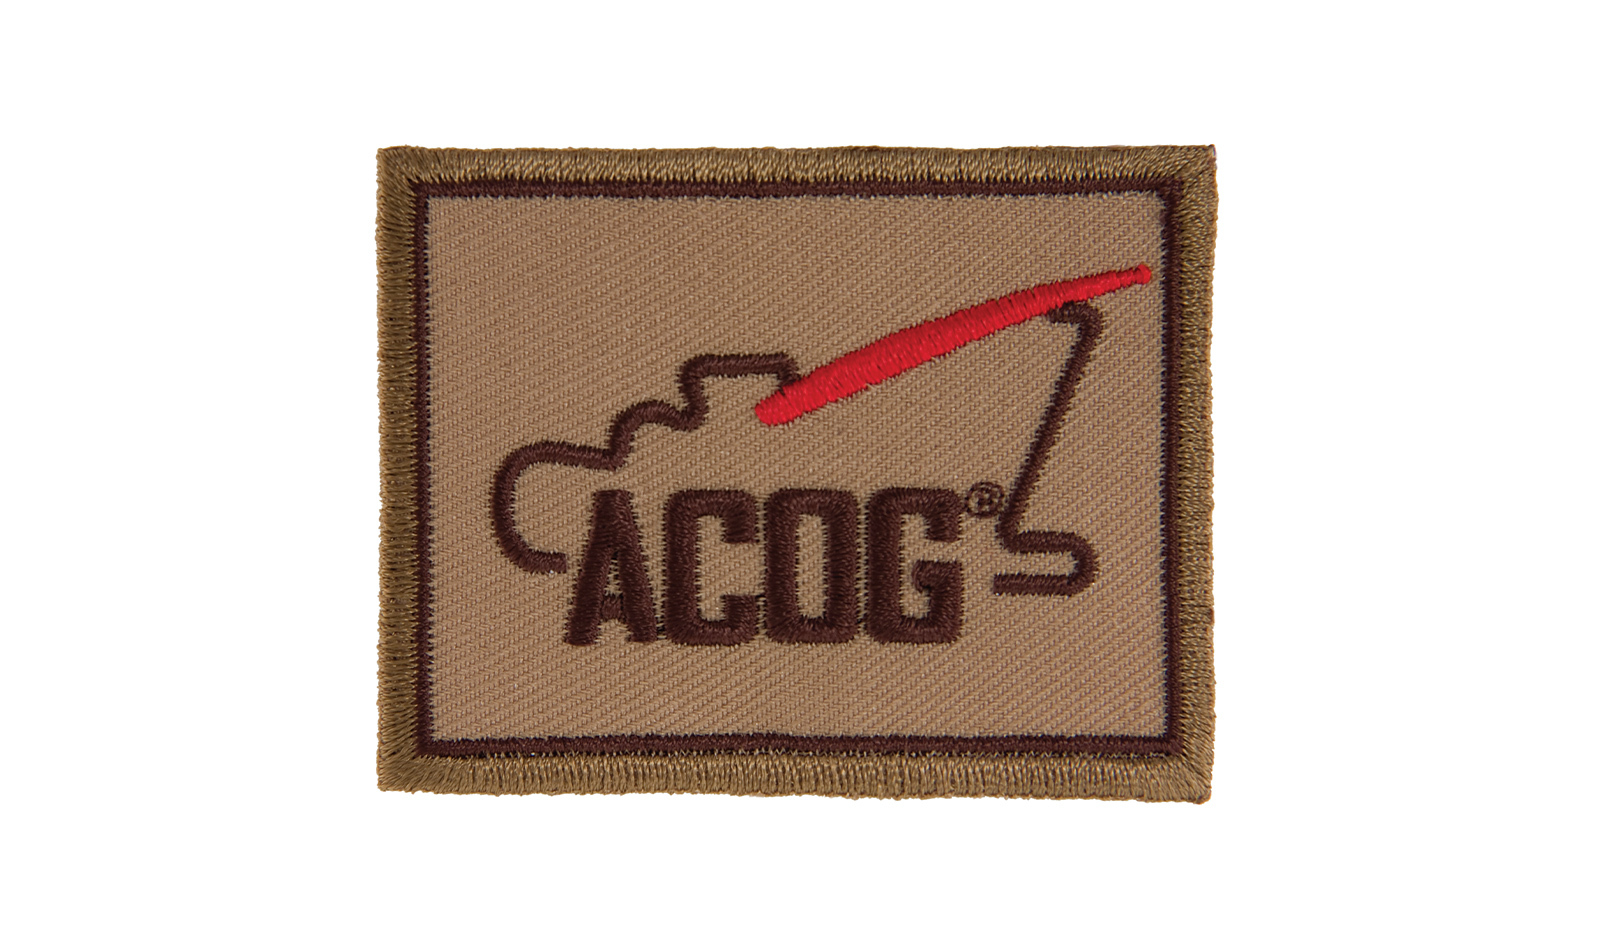 Trijicon<sup>®</sup> ACOG Patch - Tan/Brown/Red